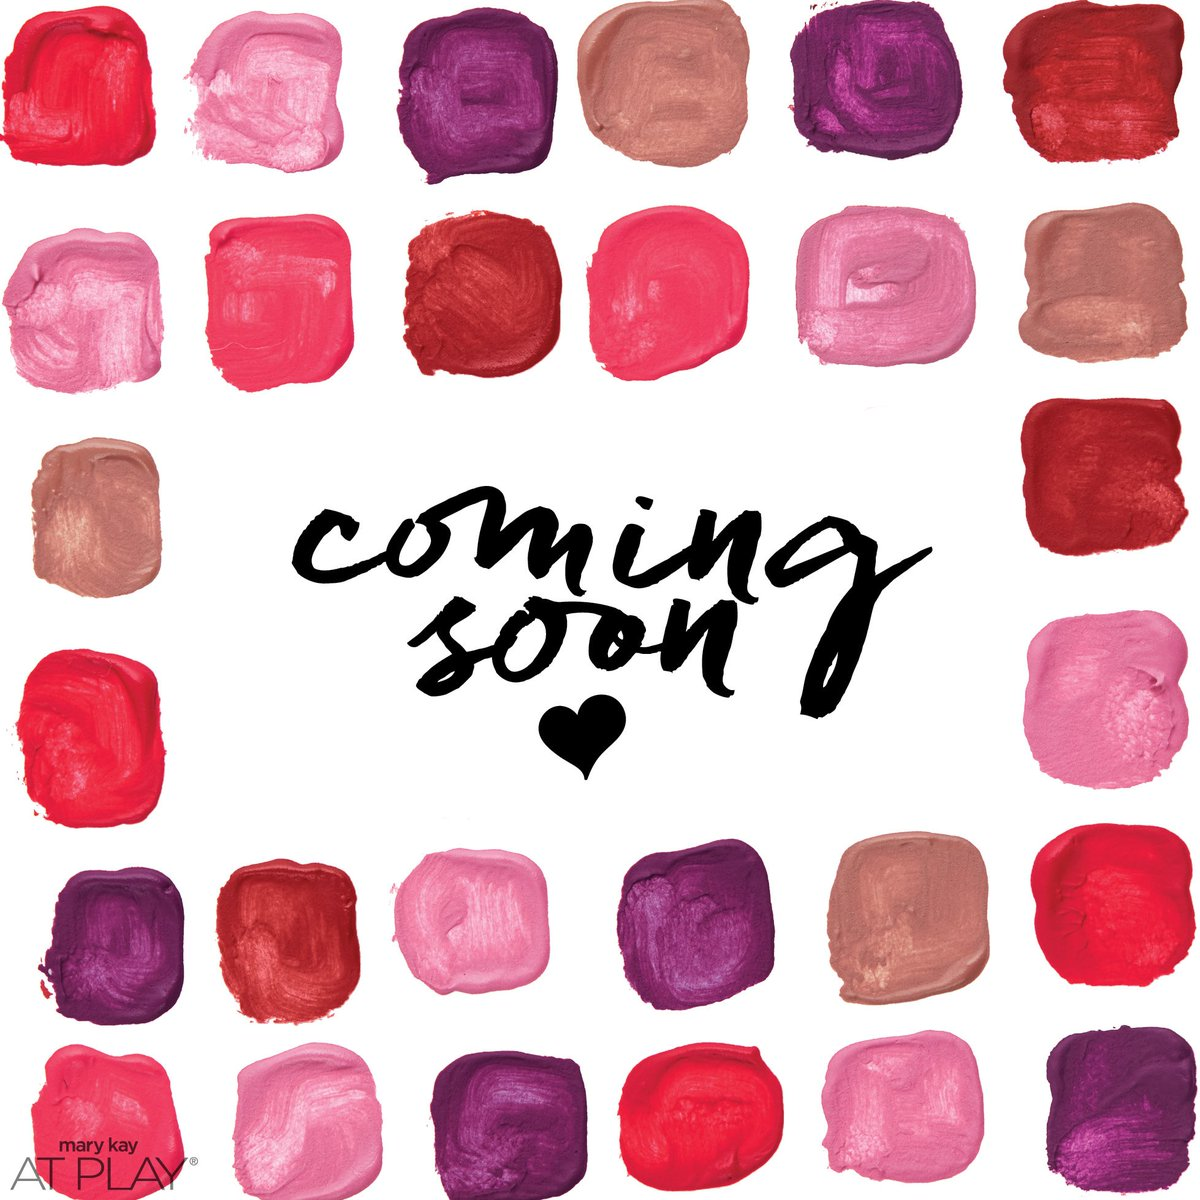 Mary Kay Uk On Twitter Your Makeup Bag Is About To Get A Makeover Coming Soon From Mary Kay